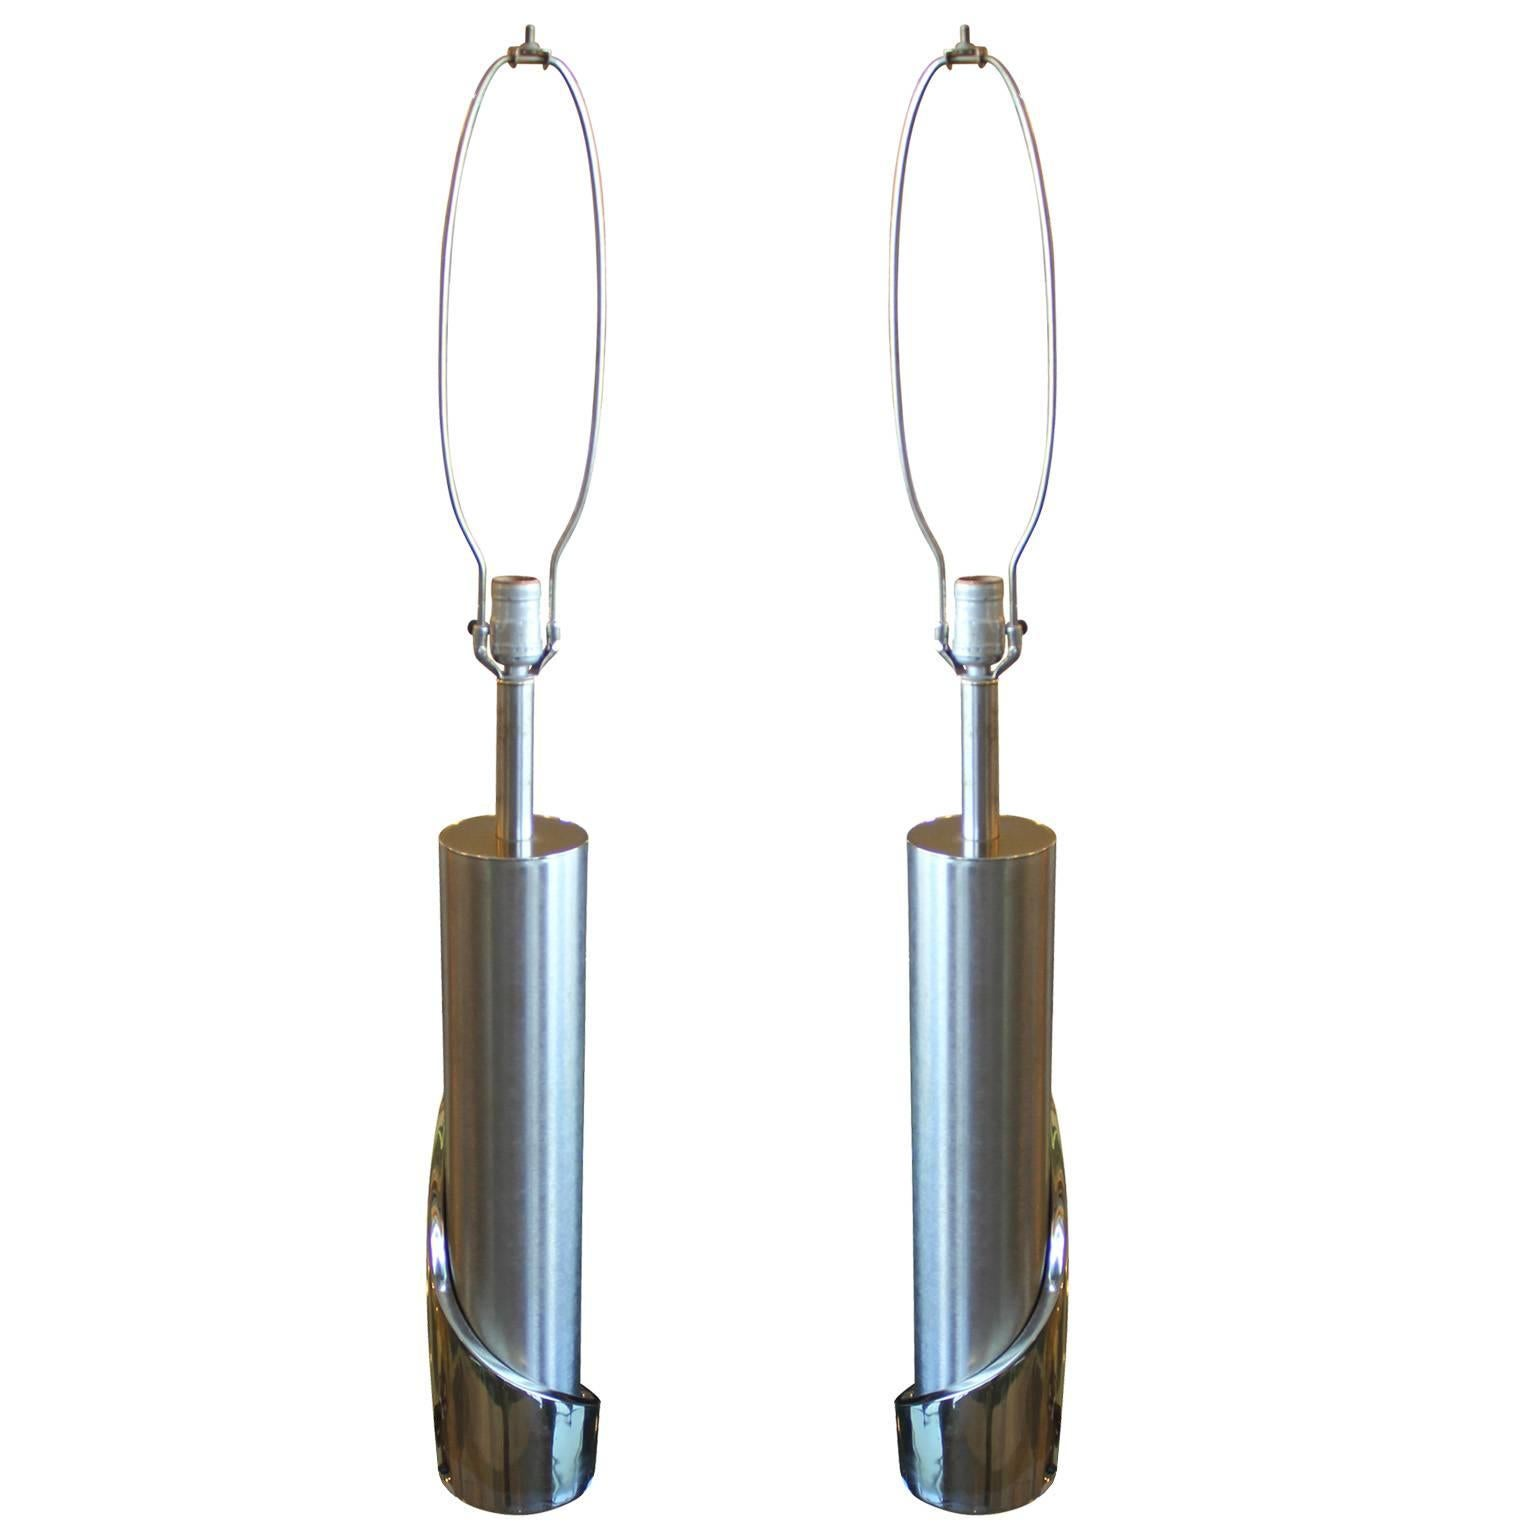 Pair of Modern Cylindrical Chrome Laurel Lamps